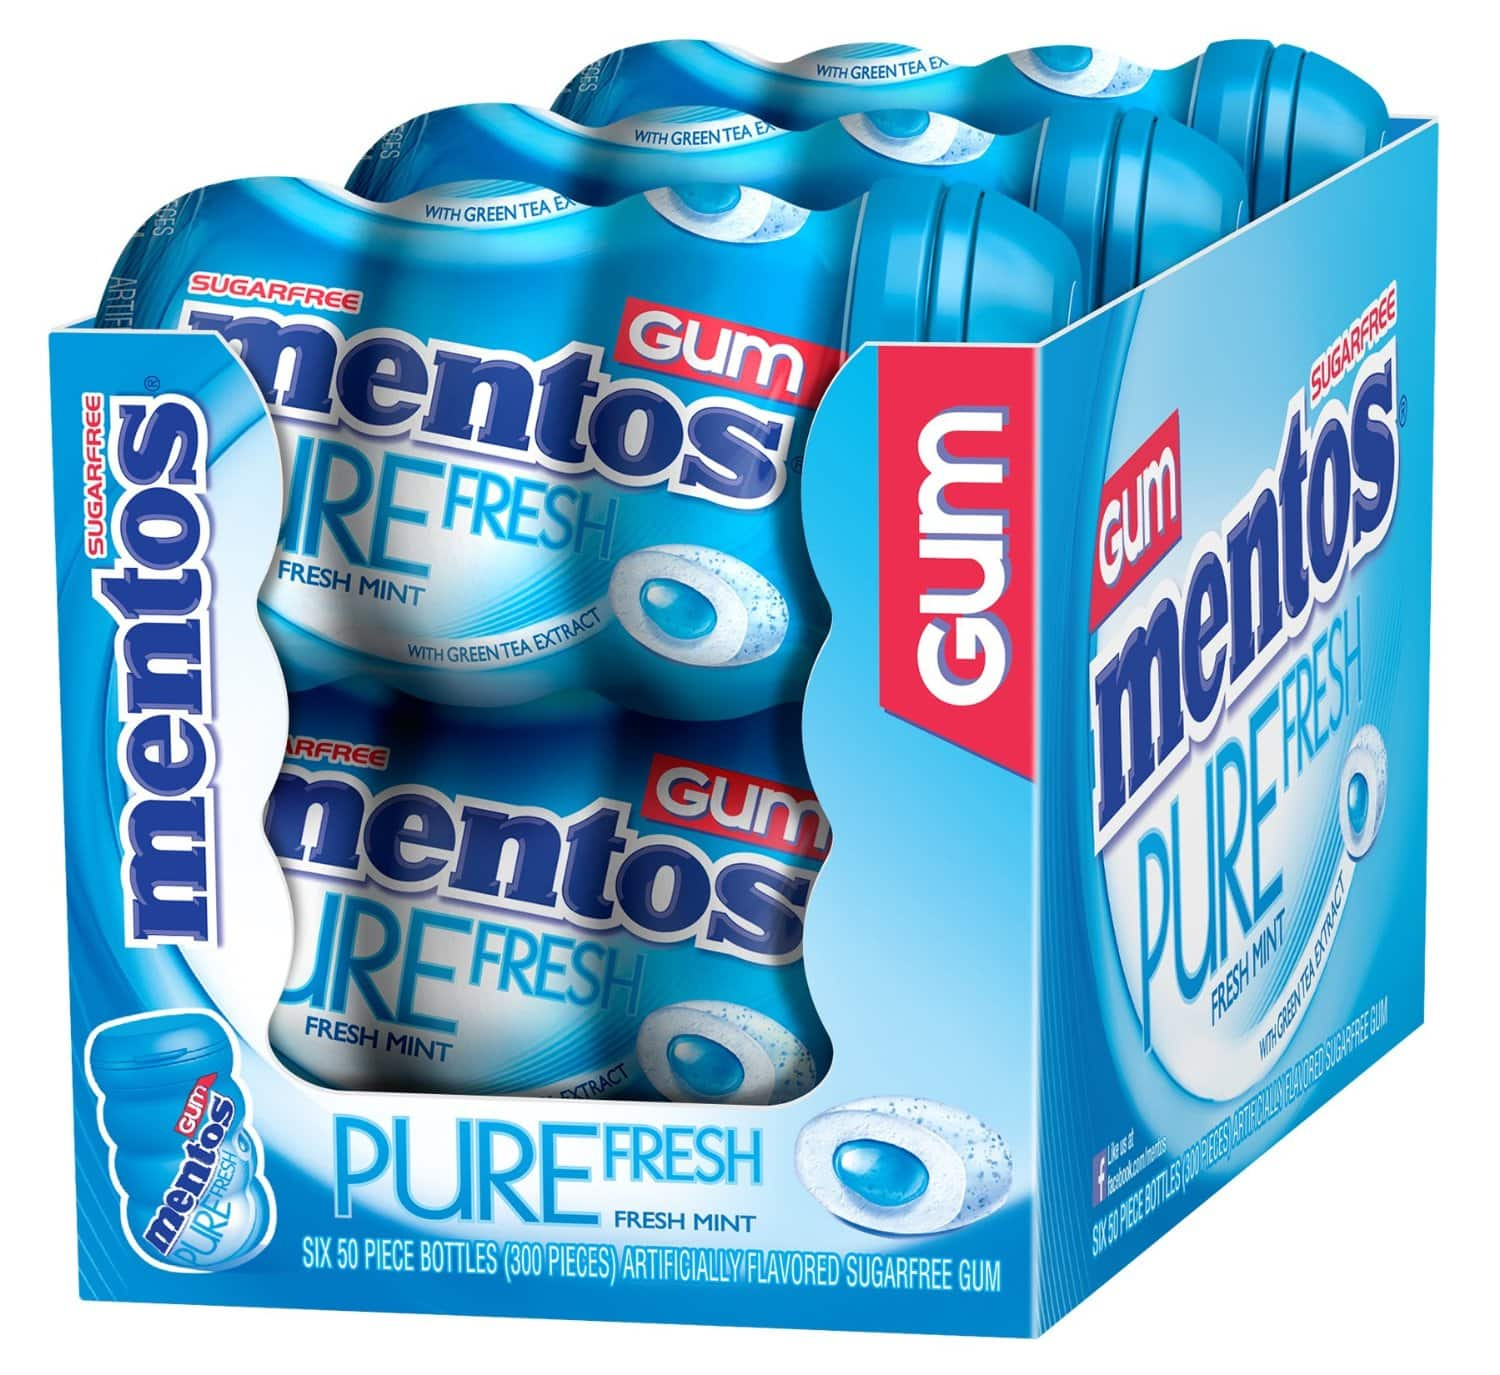 6-Pack of 50-Count Mentos Gum Big Bottle Curvy (Pure Fresh Mint)  $9.75 + Free Shipping